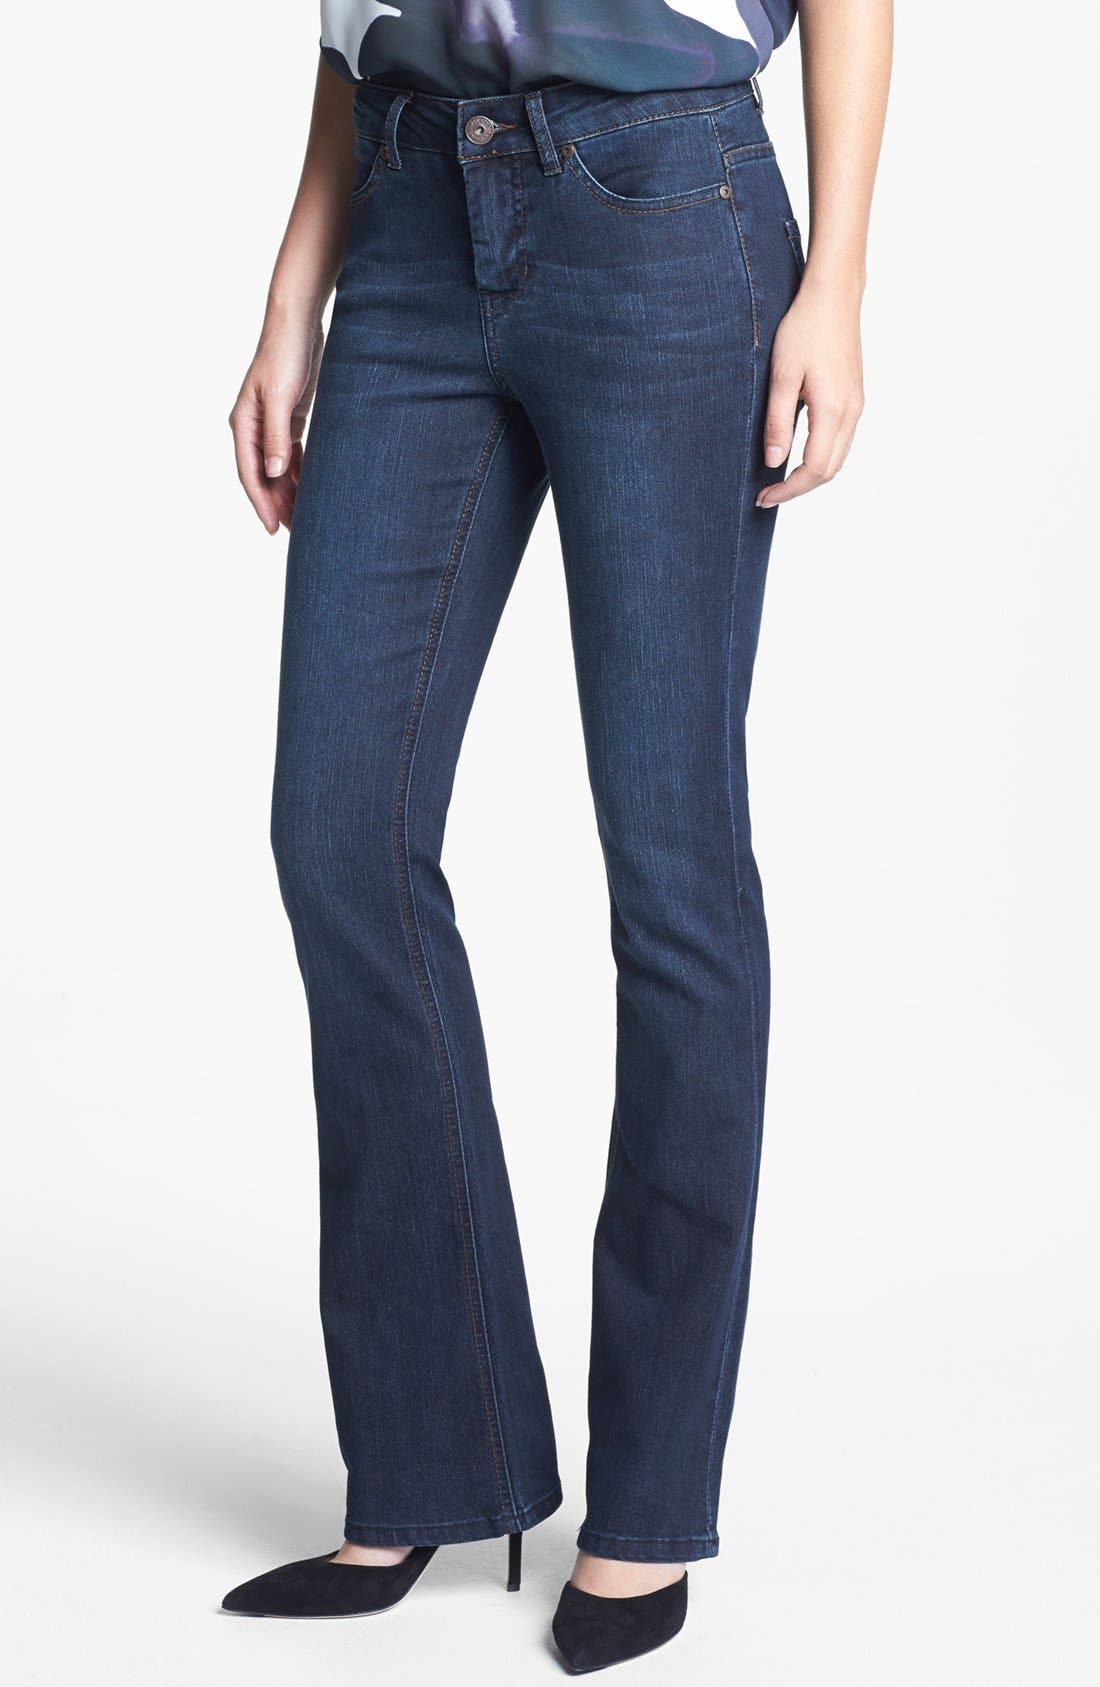 Alternate Image 1 Selected - Liverpool Jeans Company 'Lucy - Brit' Bootcut Stretch Jeans